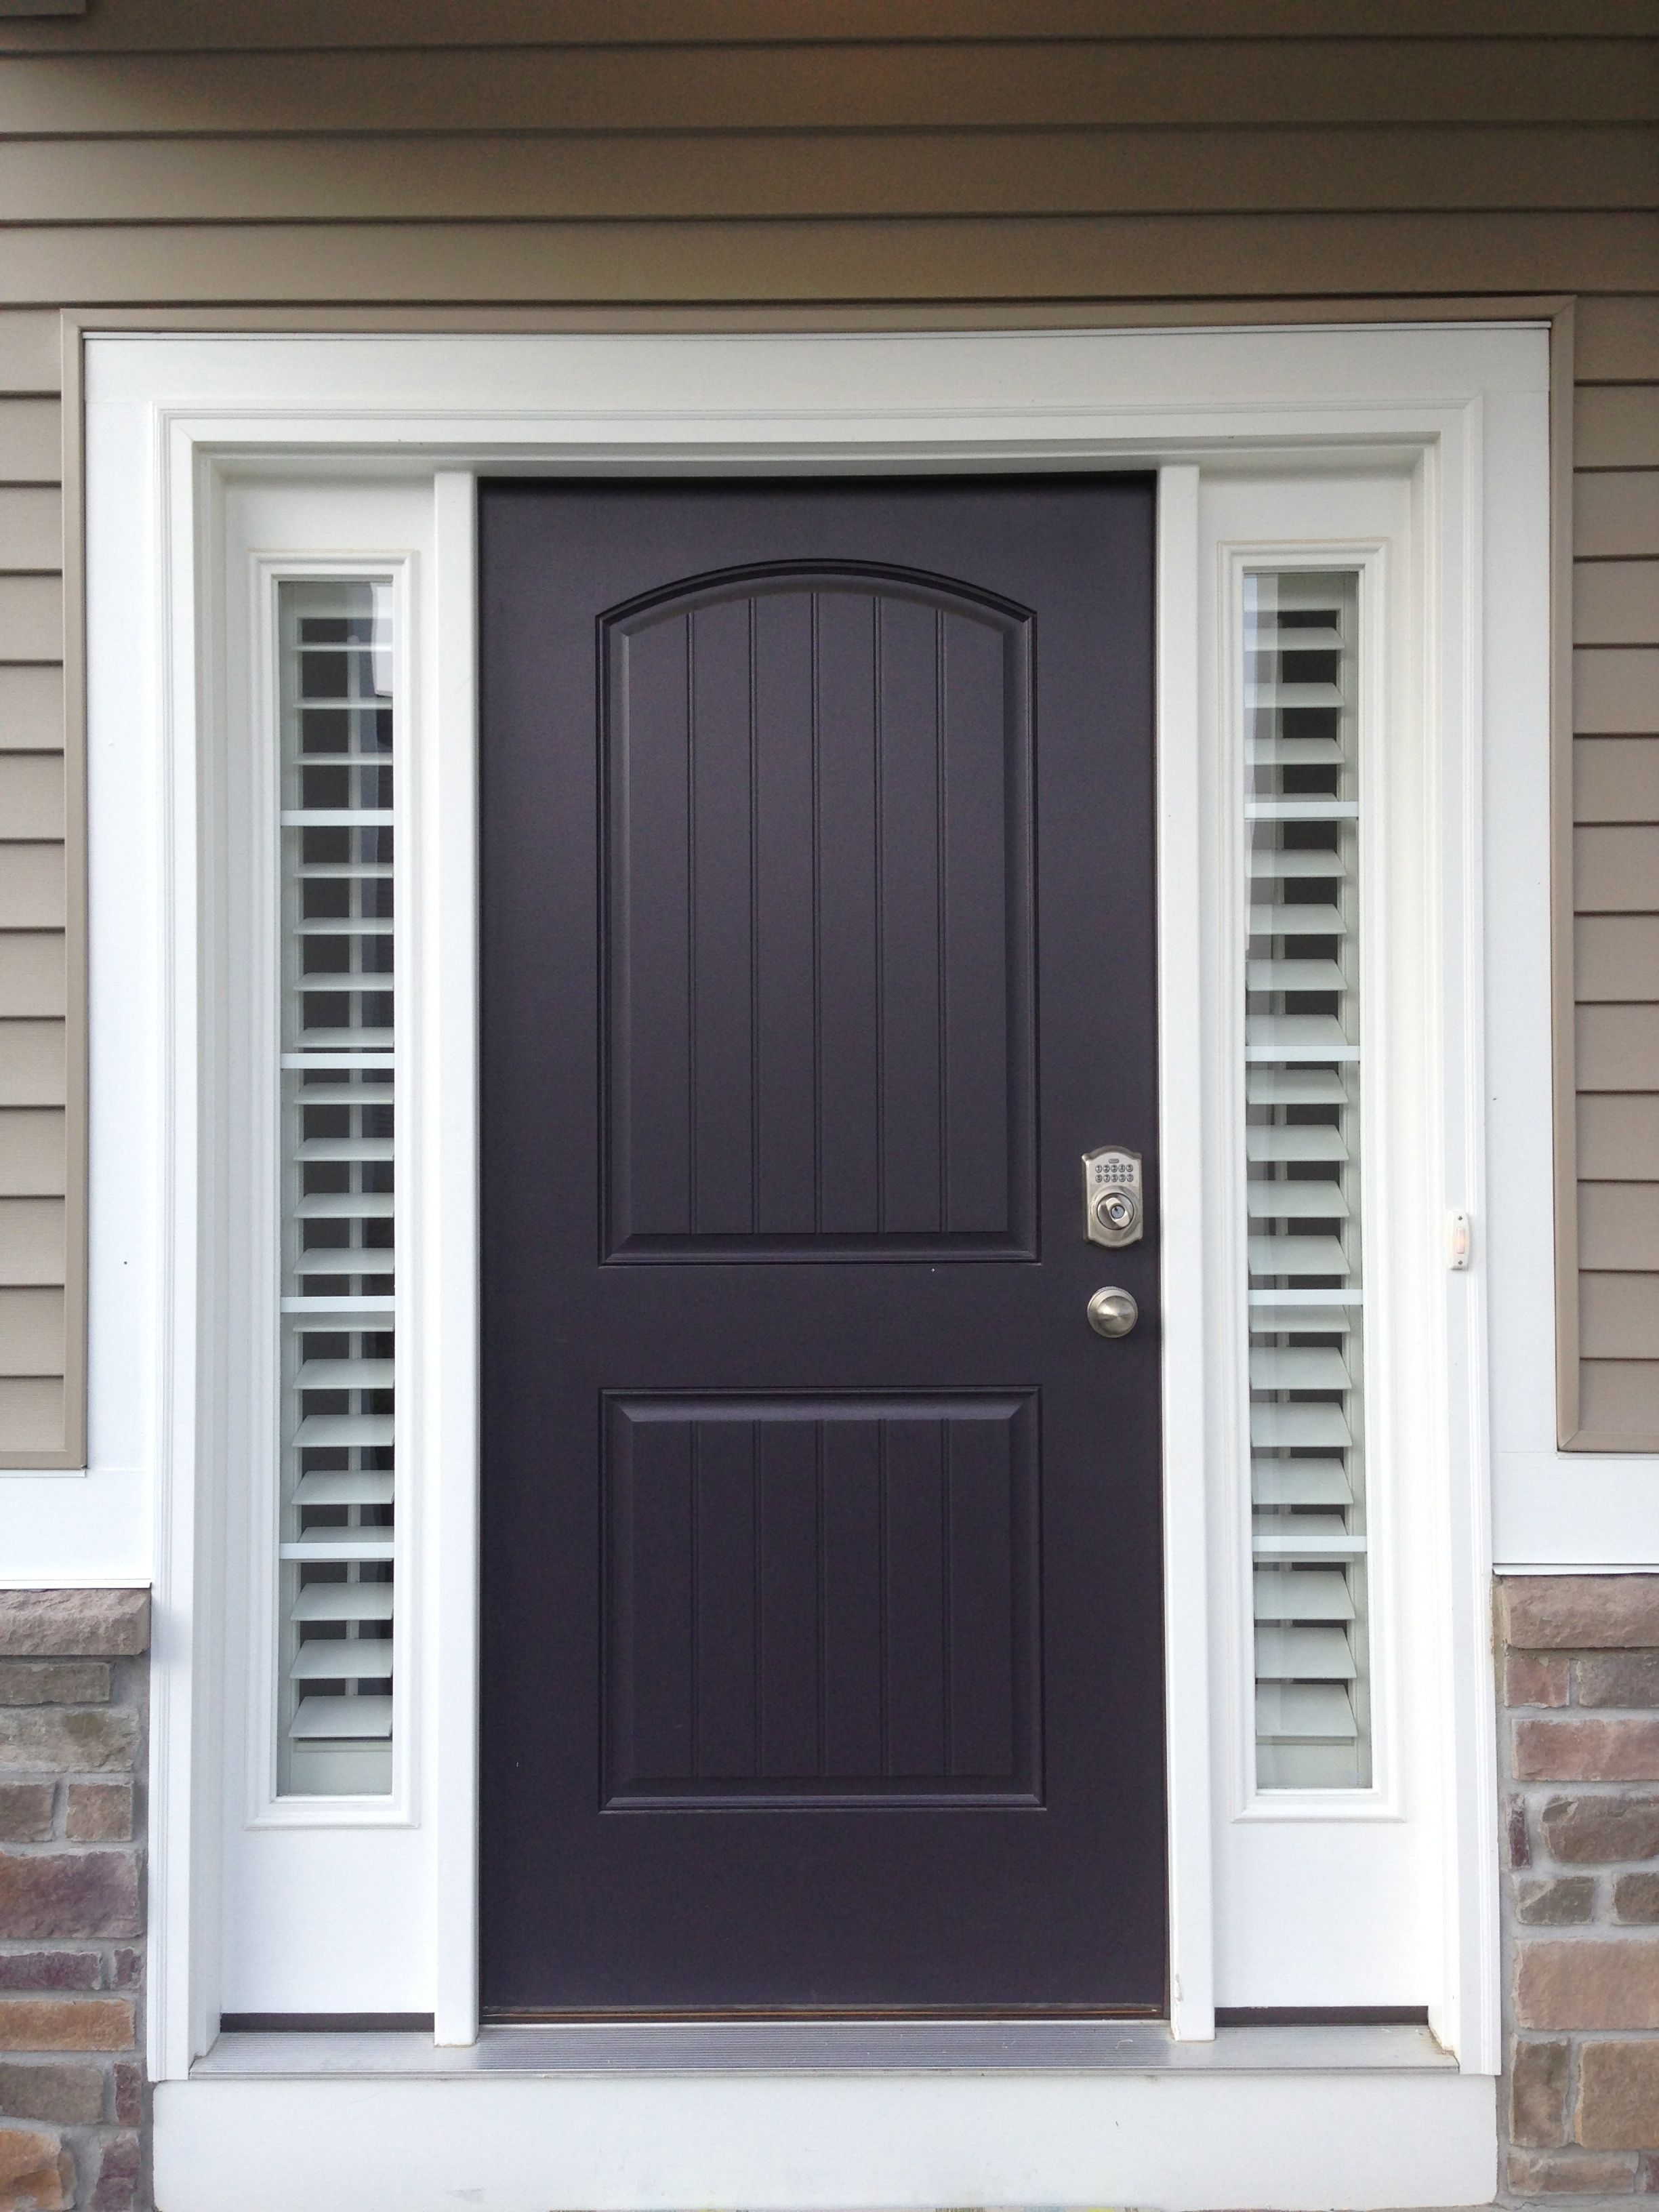 Entry door sidelight window shutters sunburst shutters for Entry doors with sidelights